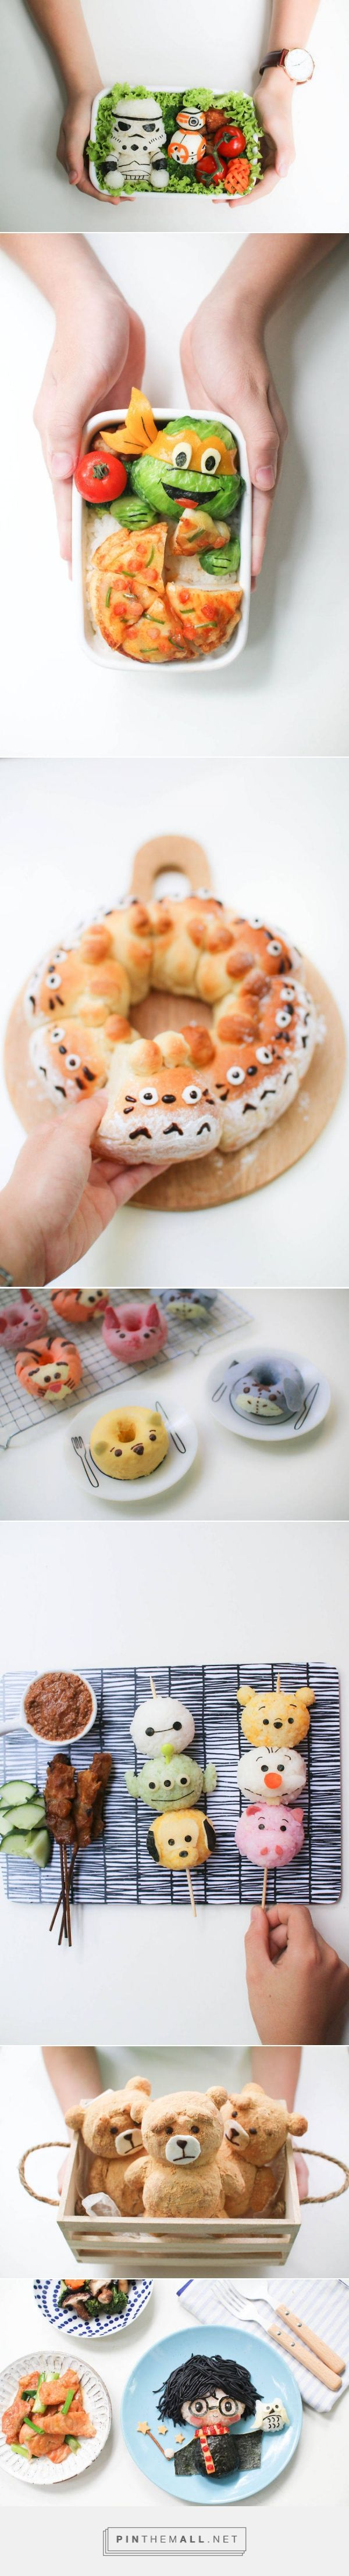 Cute Mom Cooks Cartoon-Inspired Meals for Her Kids – Fubiz Media - created on 2016-04-20 15:15:08